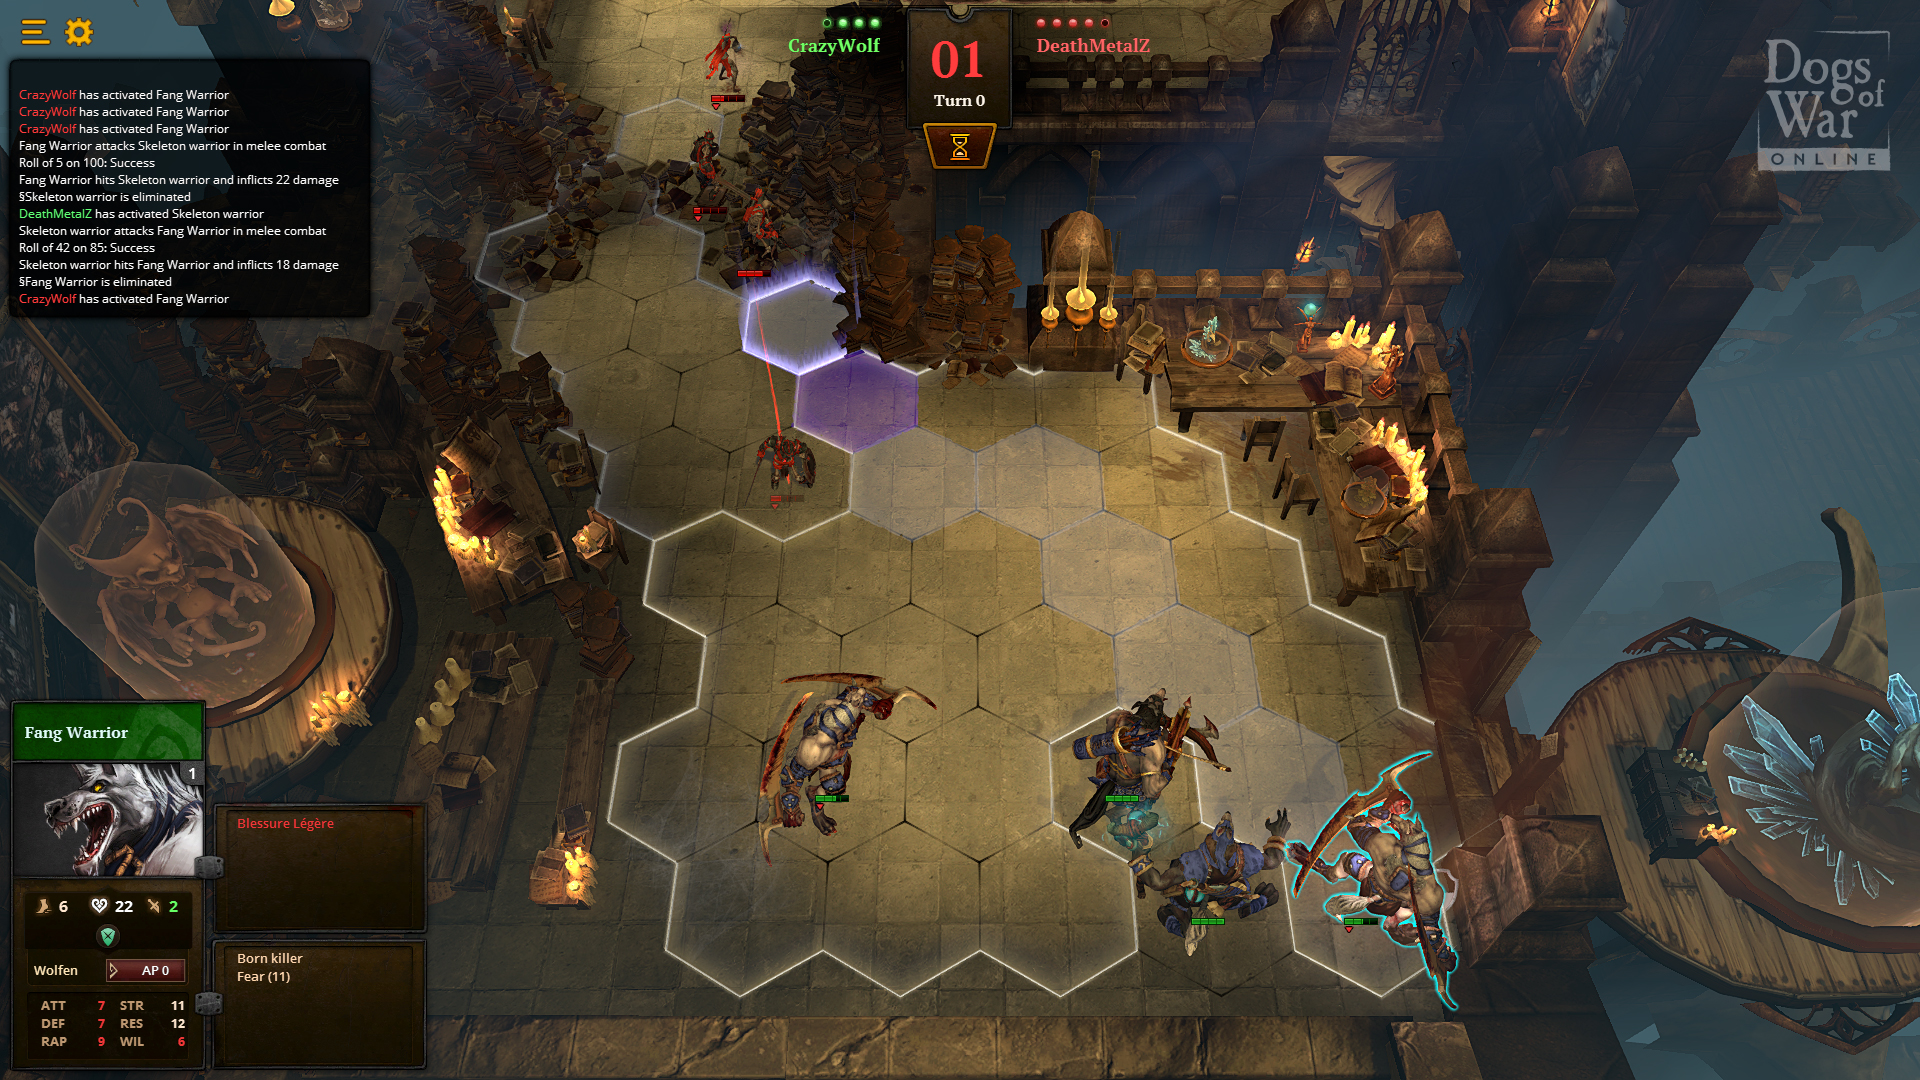 Dogs of War Online Gameplay Screenshot 4